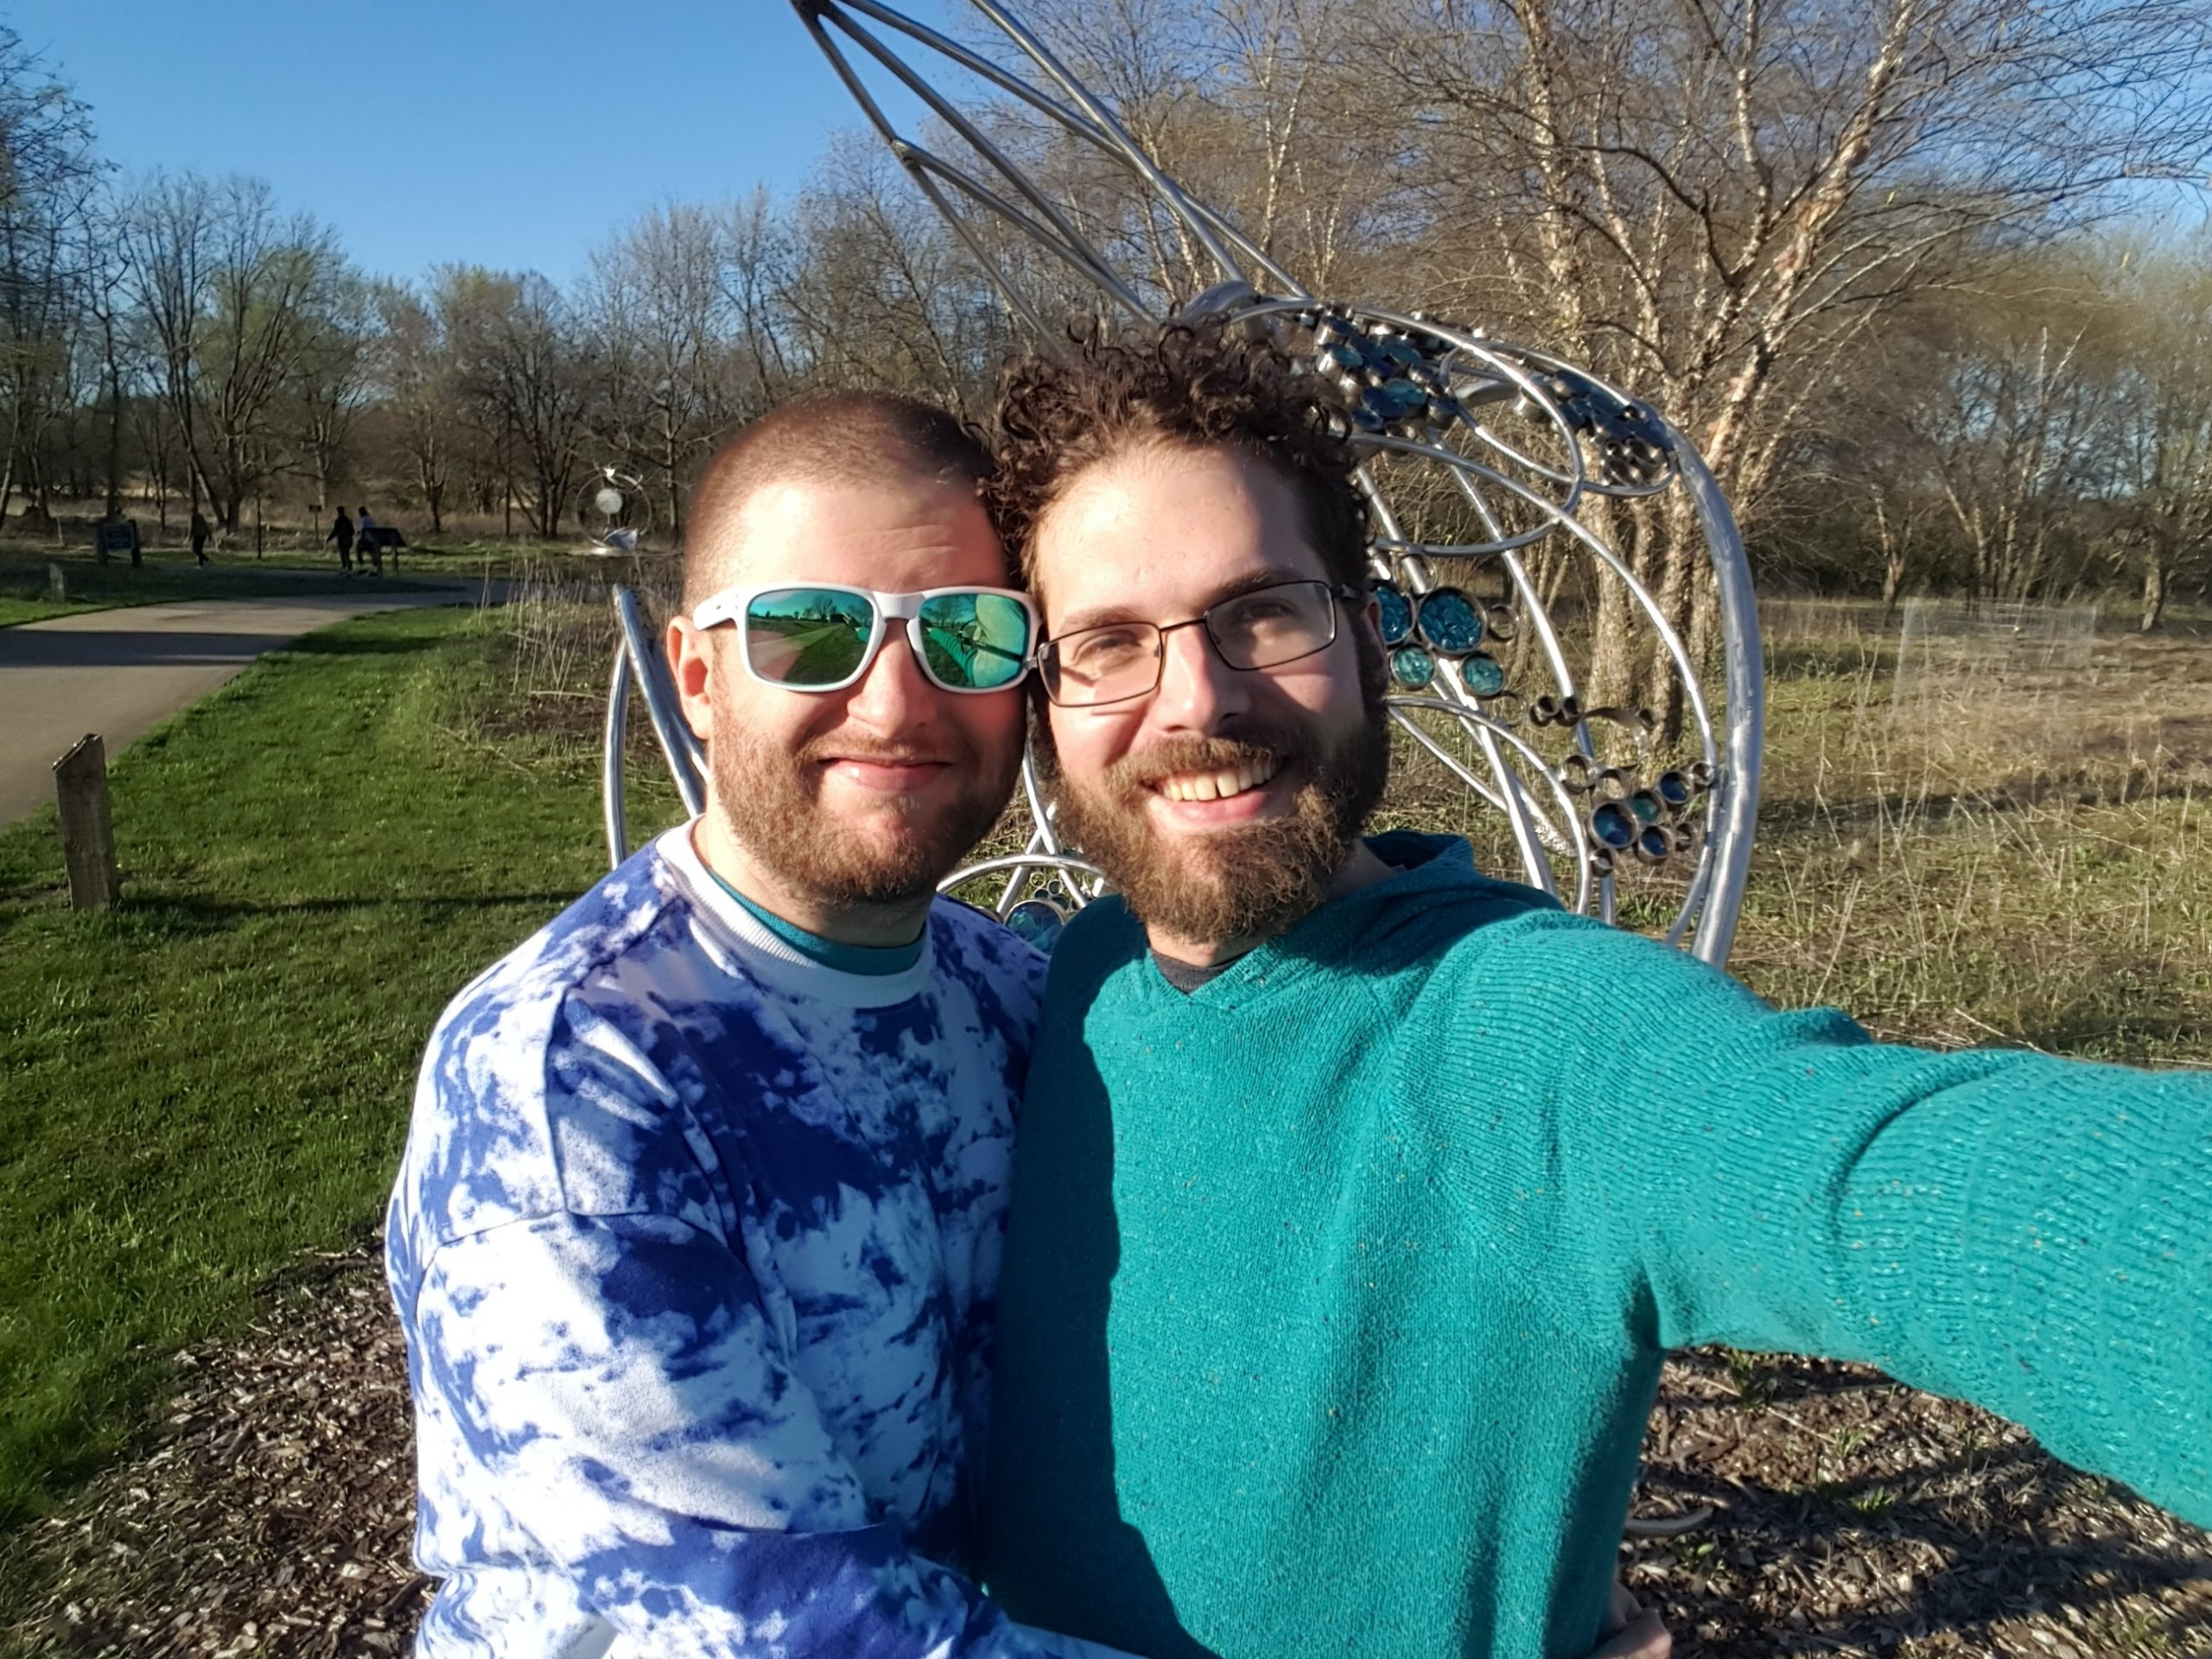 Selfie with my boyfriend John and myself in a sunny park.